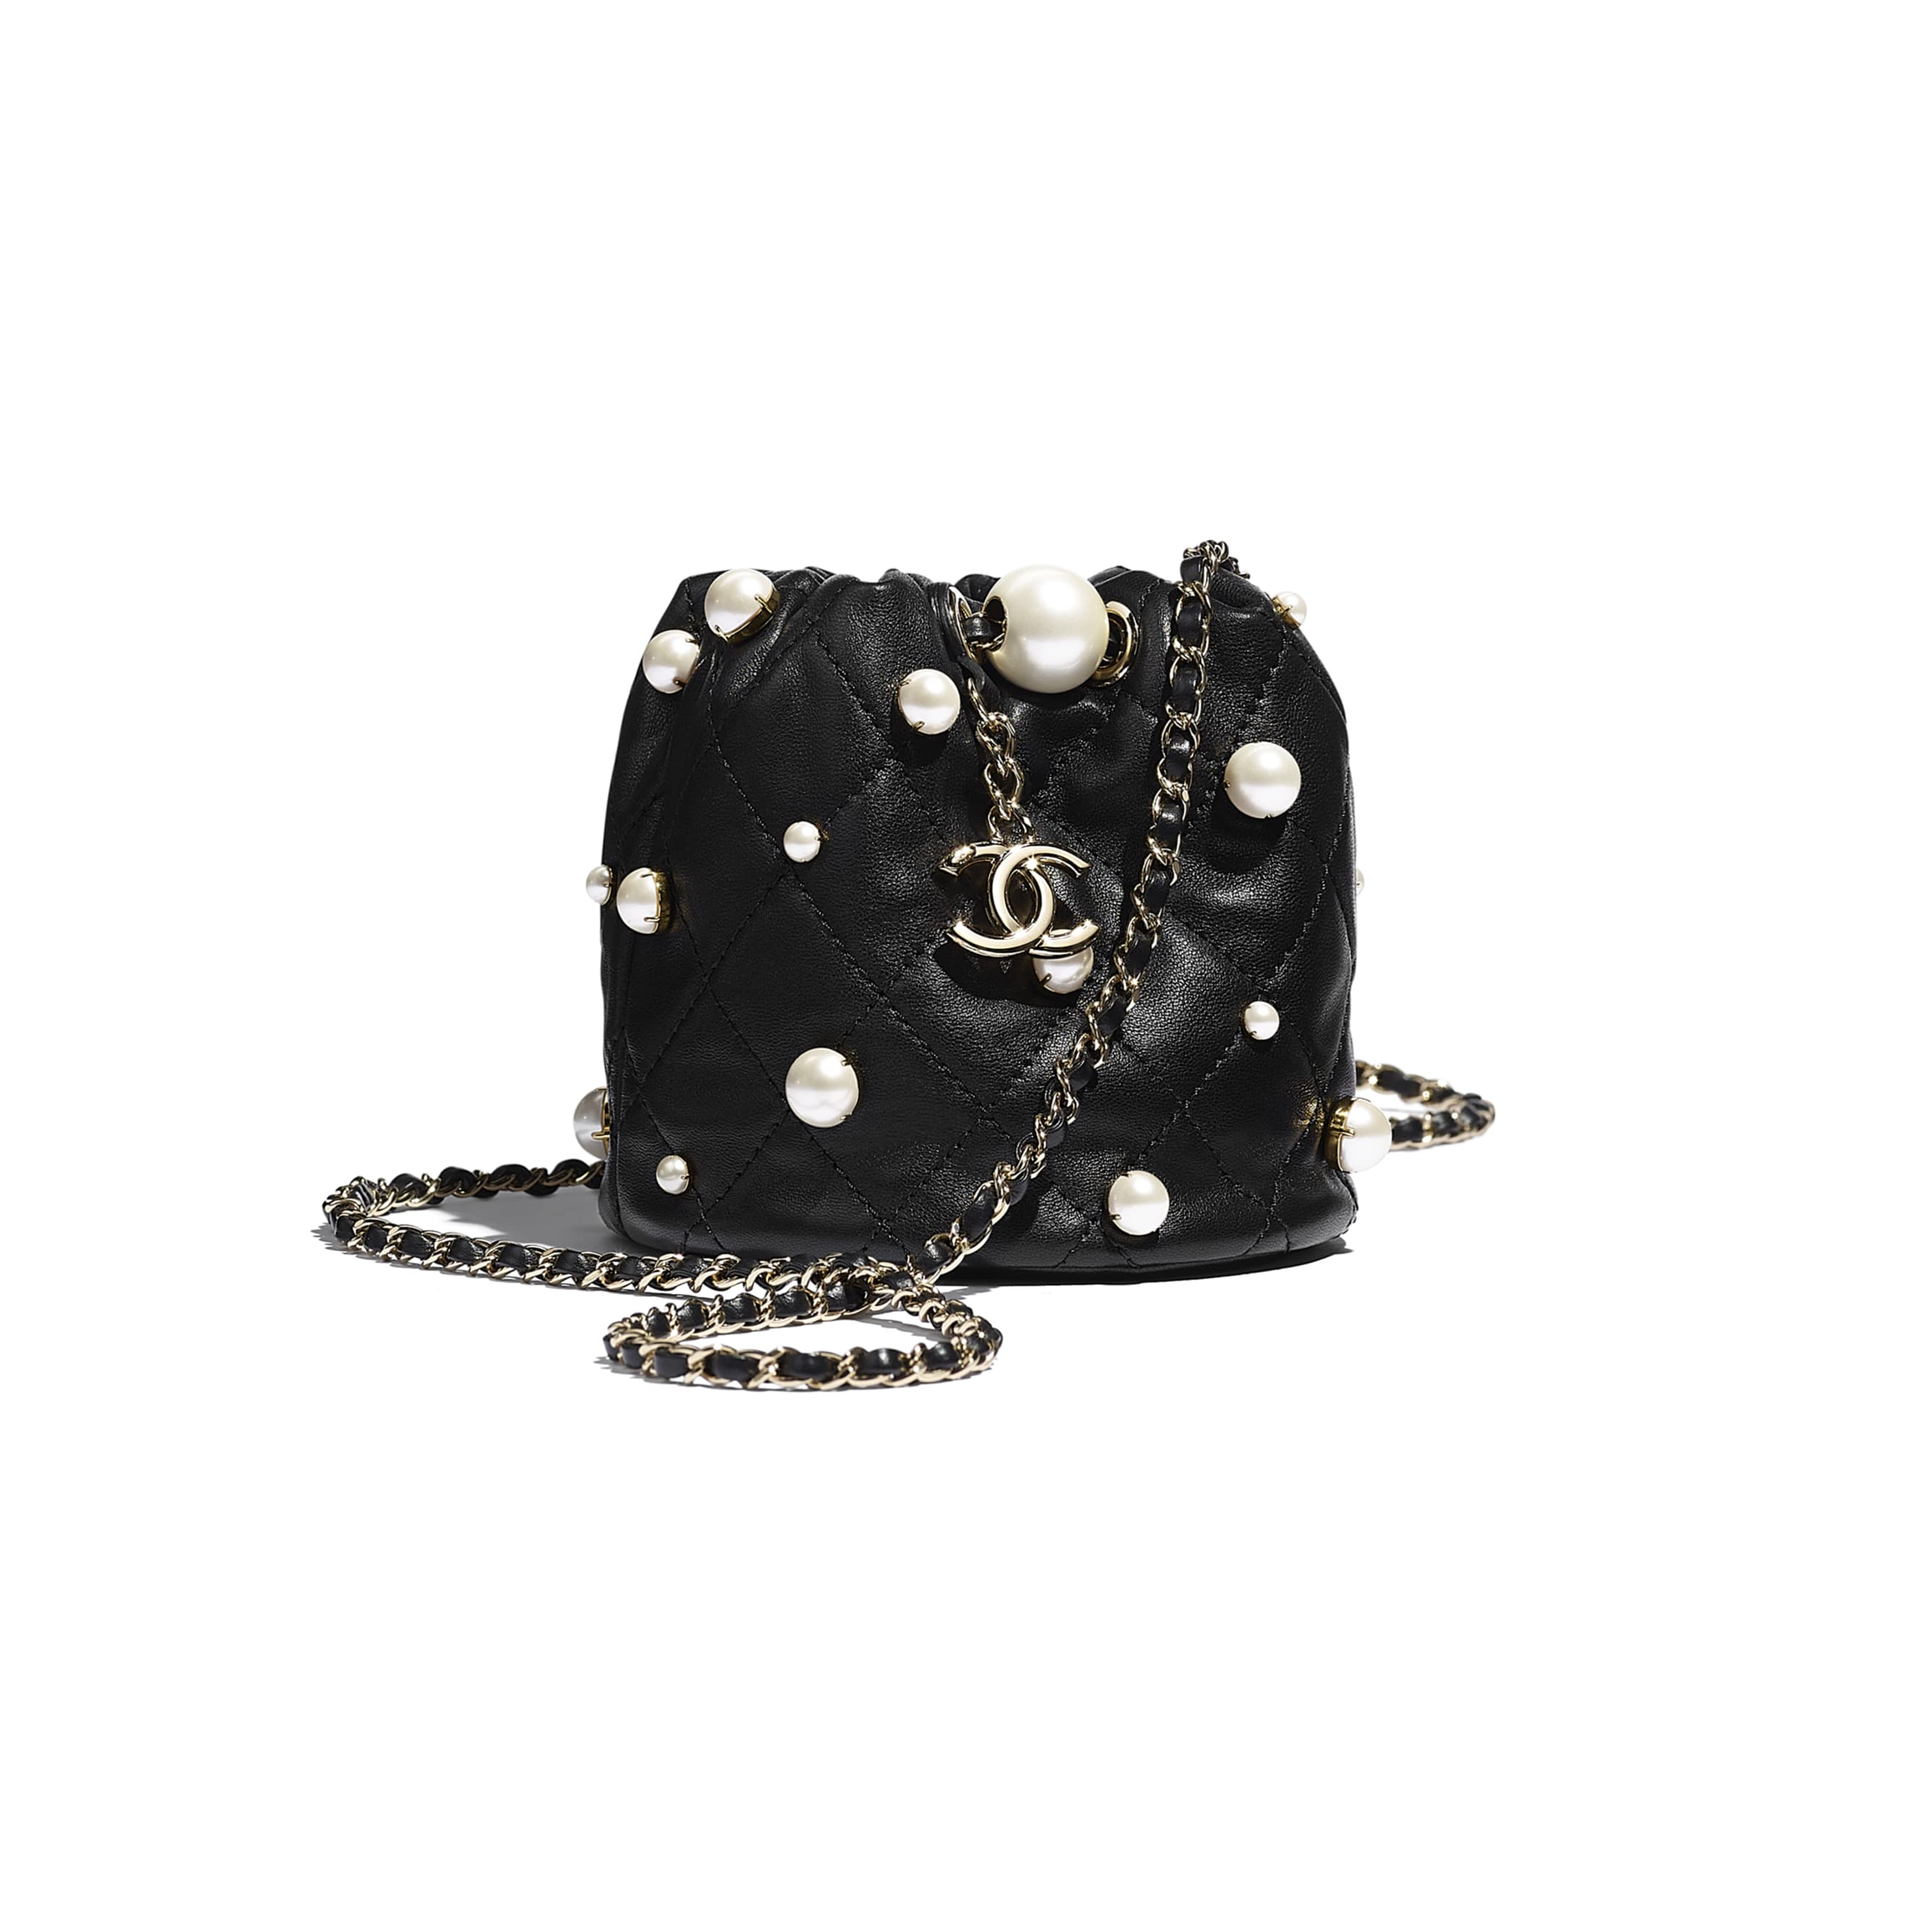 Mini Drawstring Bag - Black - Lambskin, Imitation Pearls & Gold Metal - CHANEL - Default view - see standard sized version